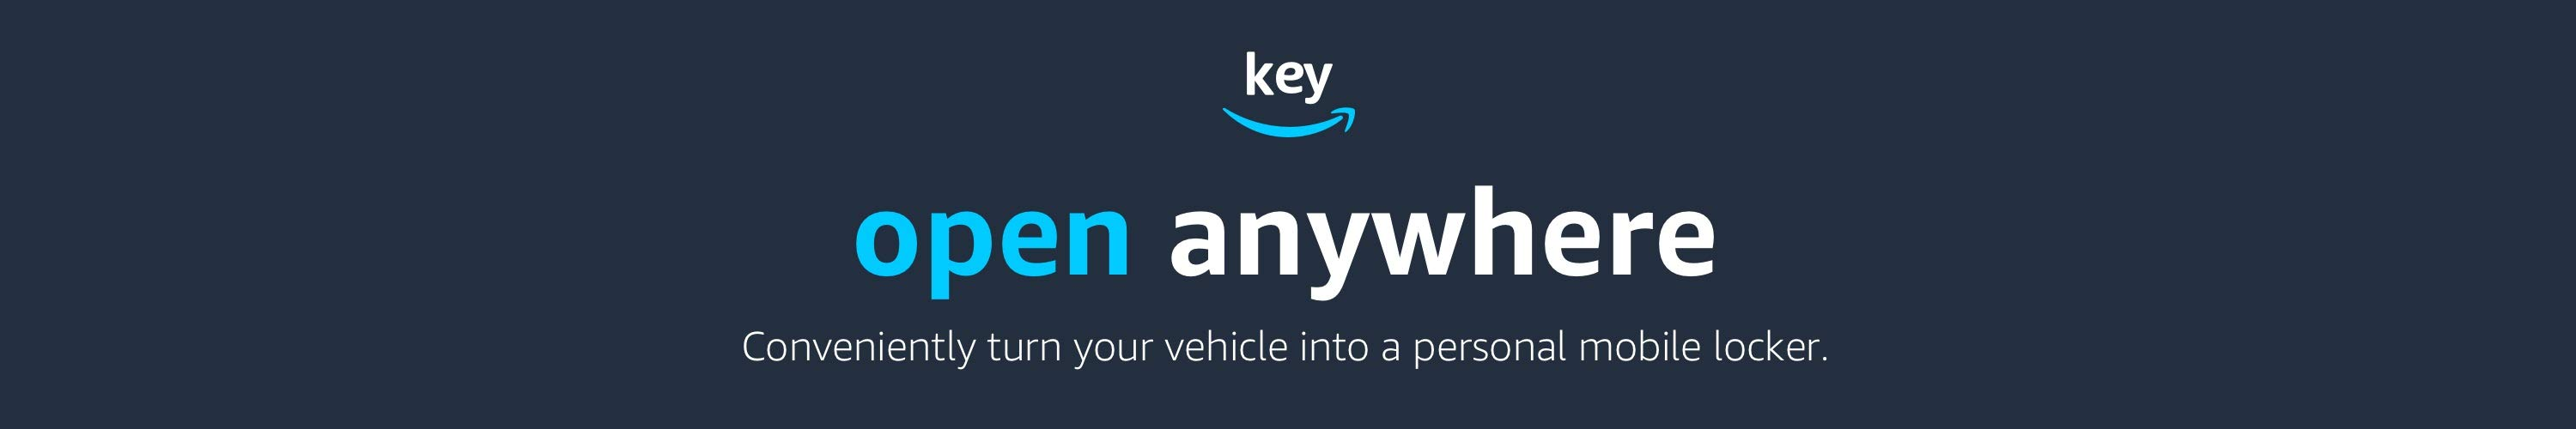 Key by Amazon. Open Anywhere. Conveniently turn your vehicle into a personal mobile locker.